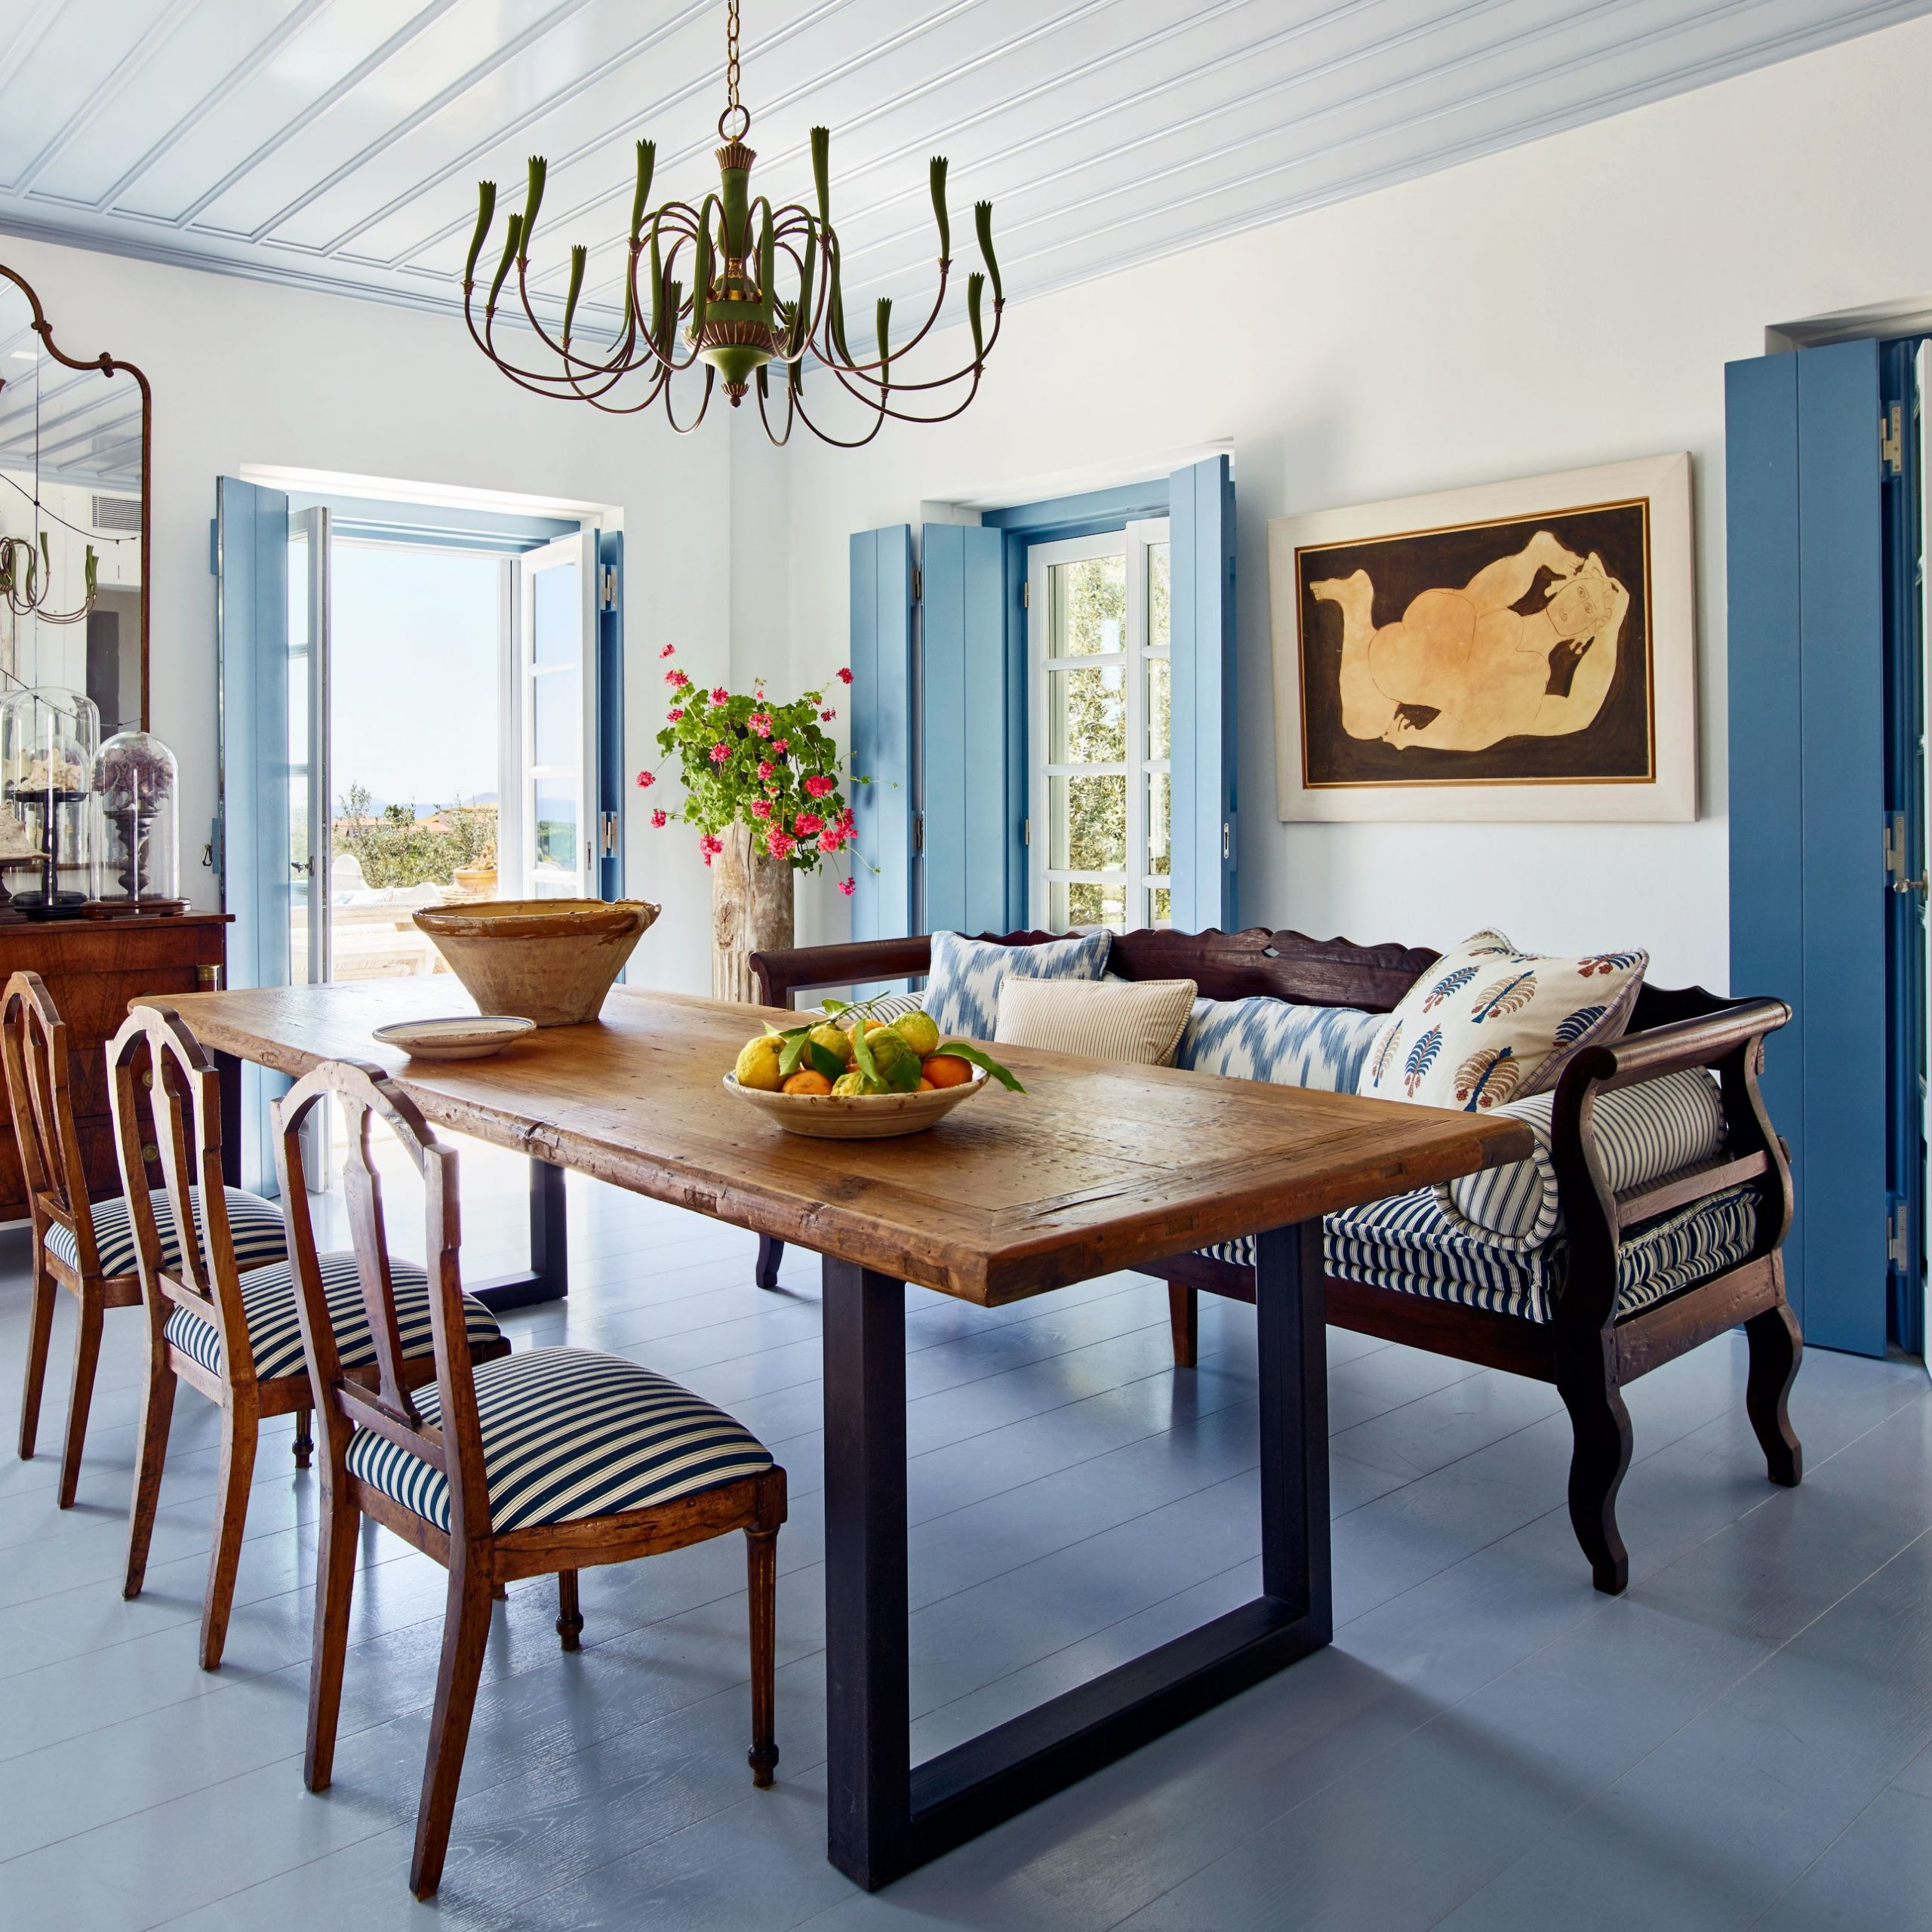 Latest Tips To Mix And Match Dining Room Chairs Successfully Throughout Walnut And Antique White Finish Contemporary Country Dining Tables (View 9 of 30)